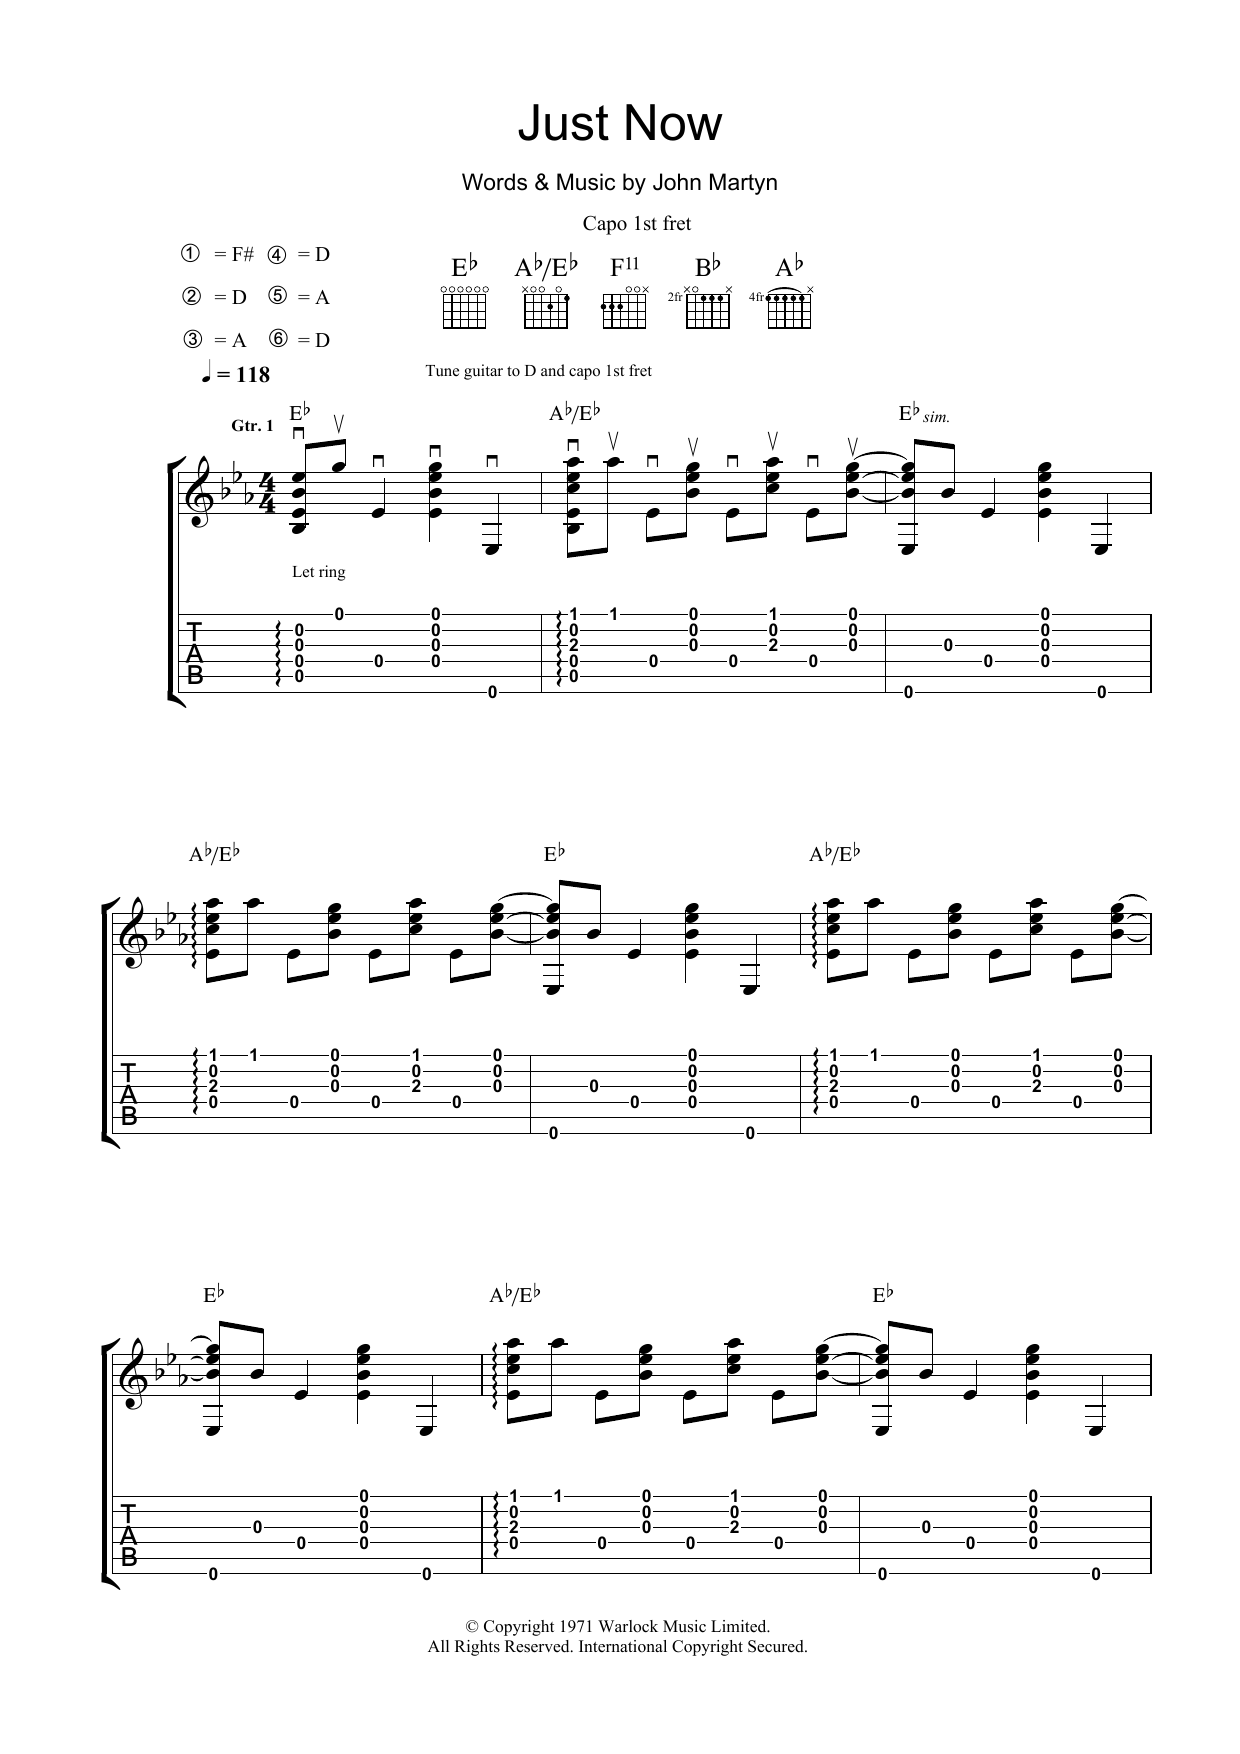 Just Now Sheet Music